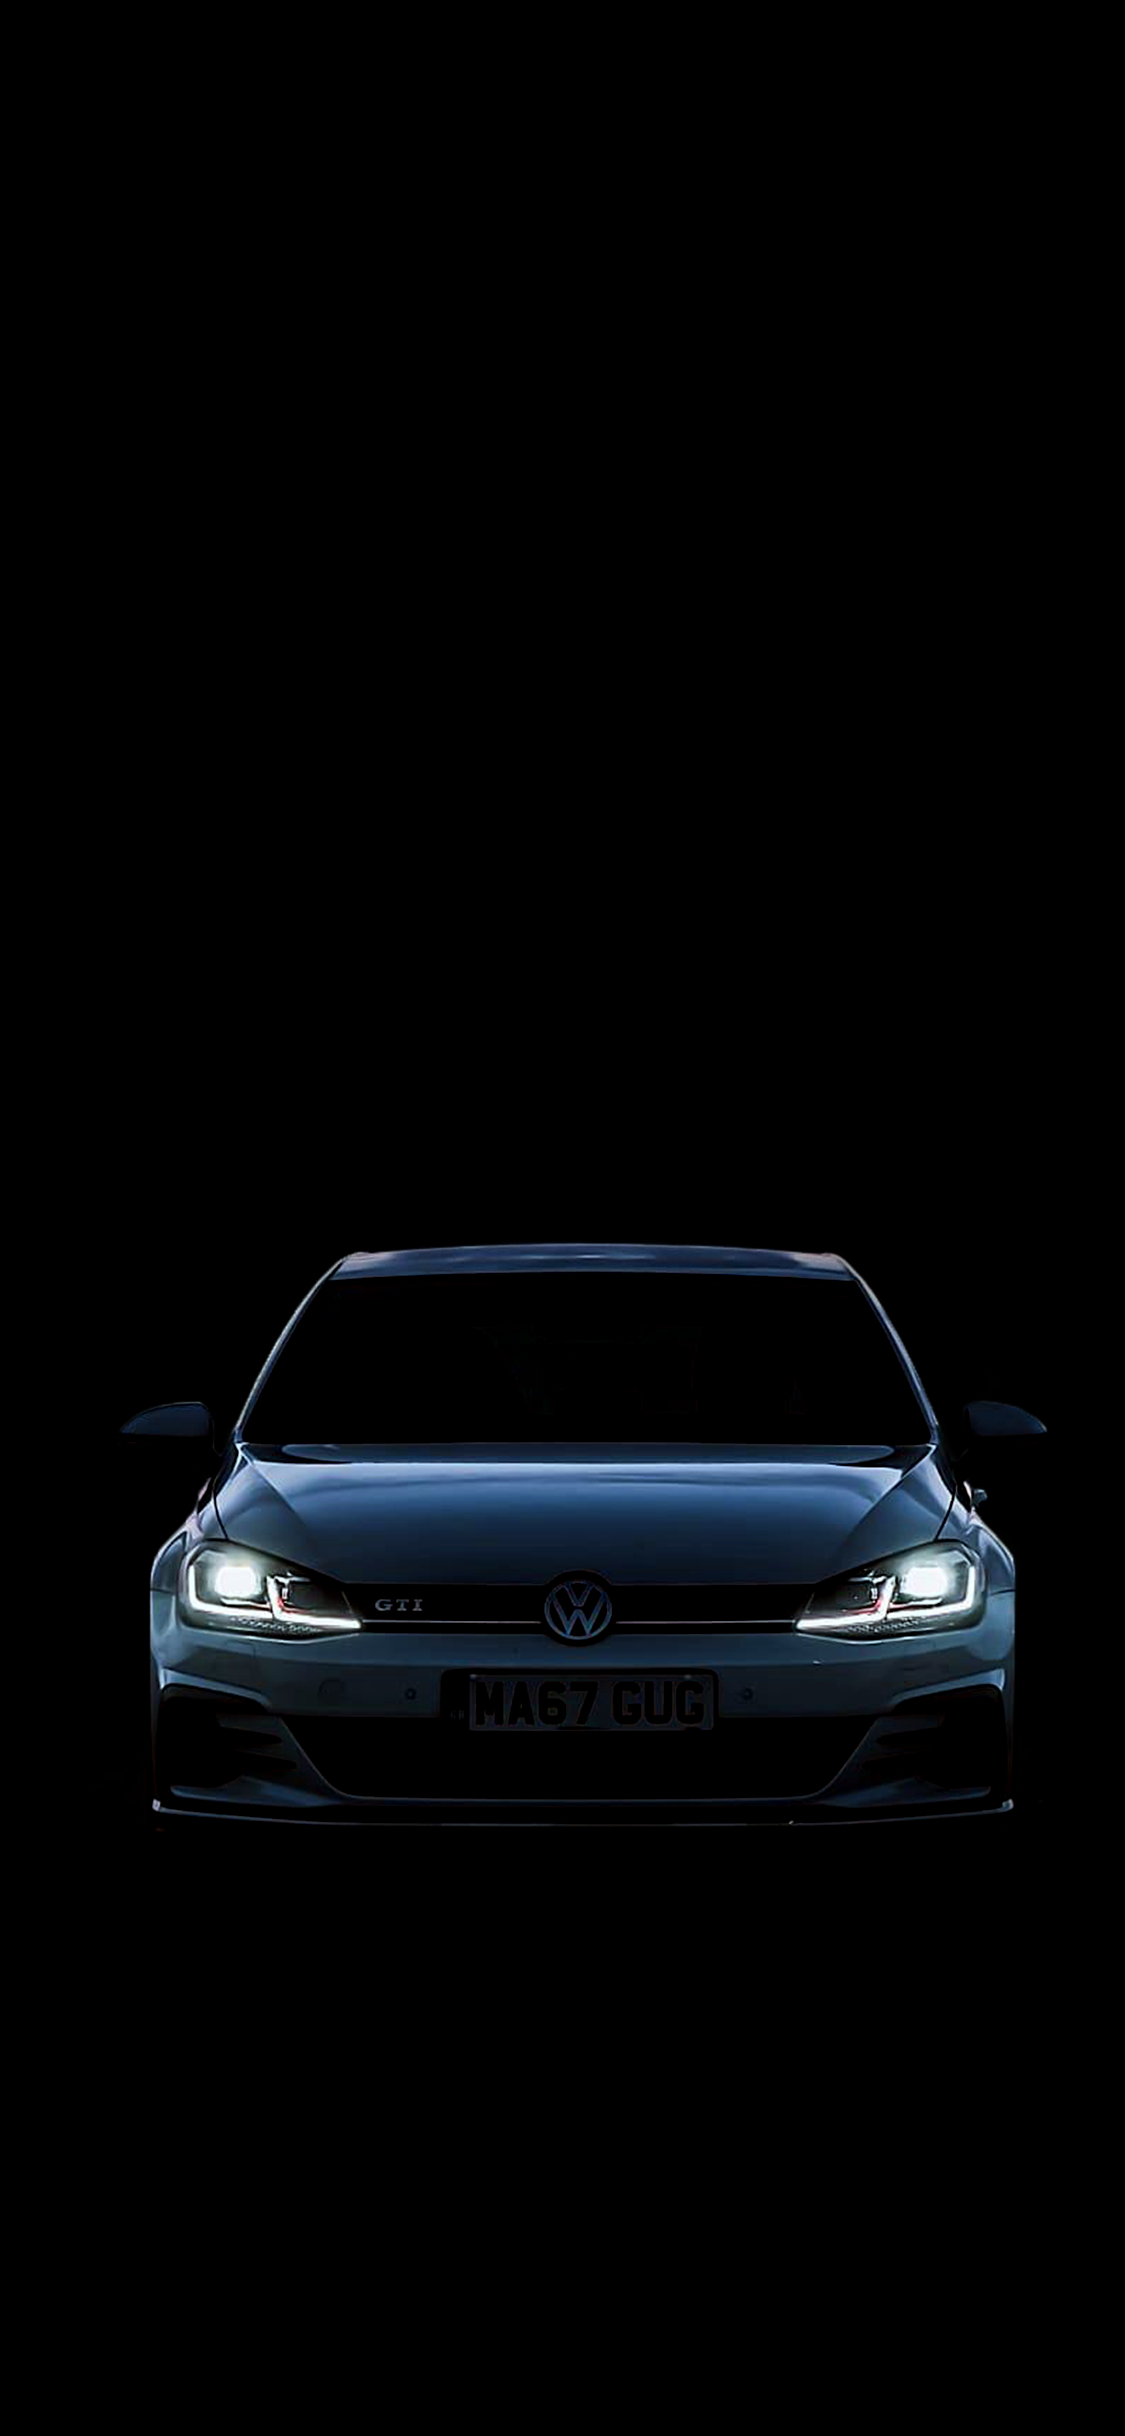 Golf Mk7 Iphone Wallpapers Wallpaper Cave